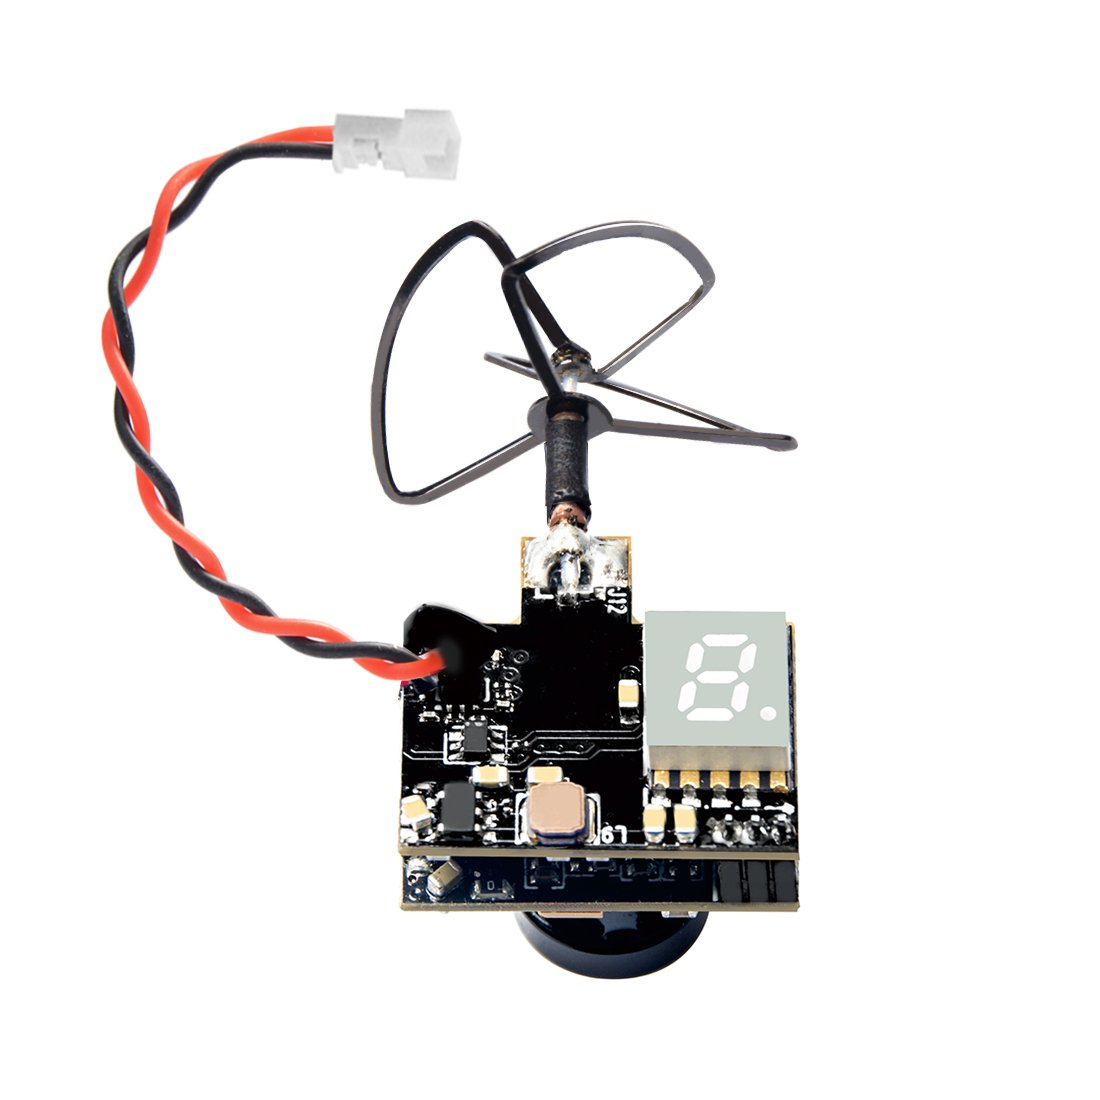 Wolfwhoop WT03 Micro FPV AIO 600TVL Camera 5.8G 25mW/50mW/200mW Adjustable Transmitter with Cloverleaf Antenna for Mini Aircraft 61xgB5p6iIL